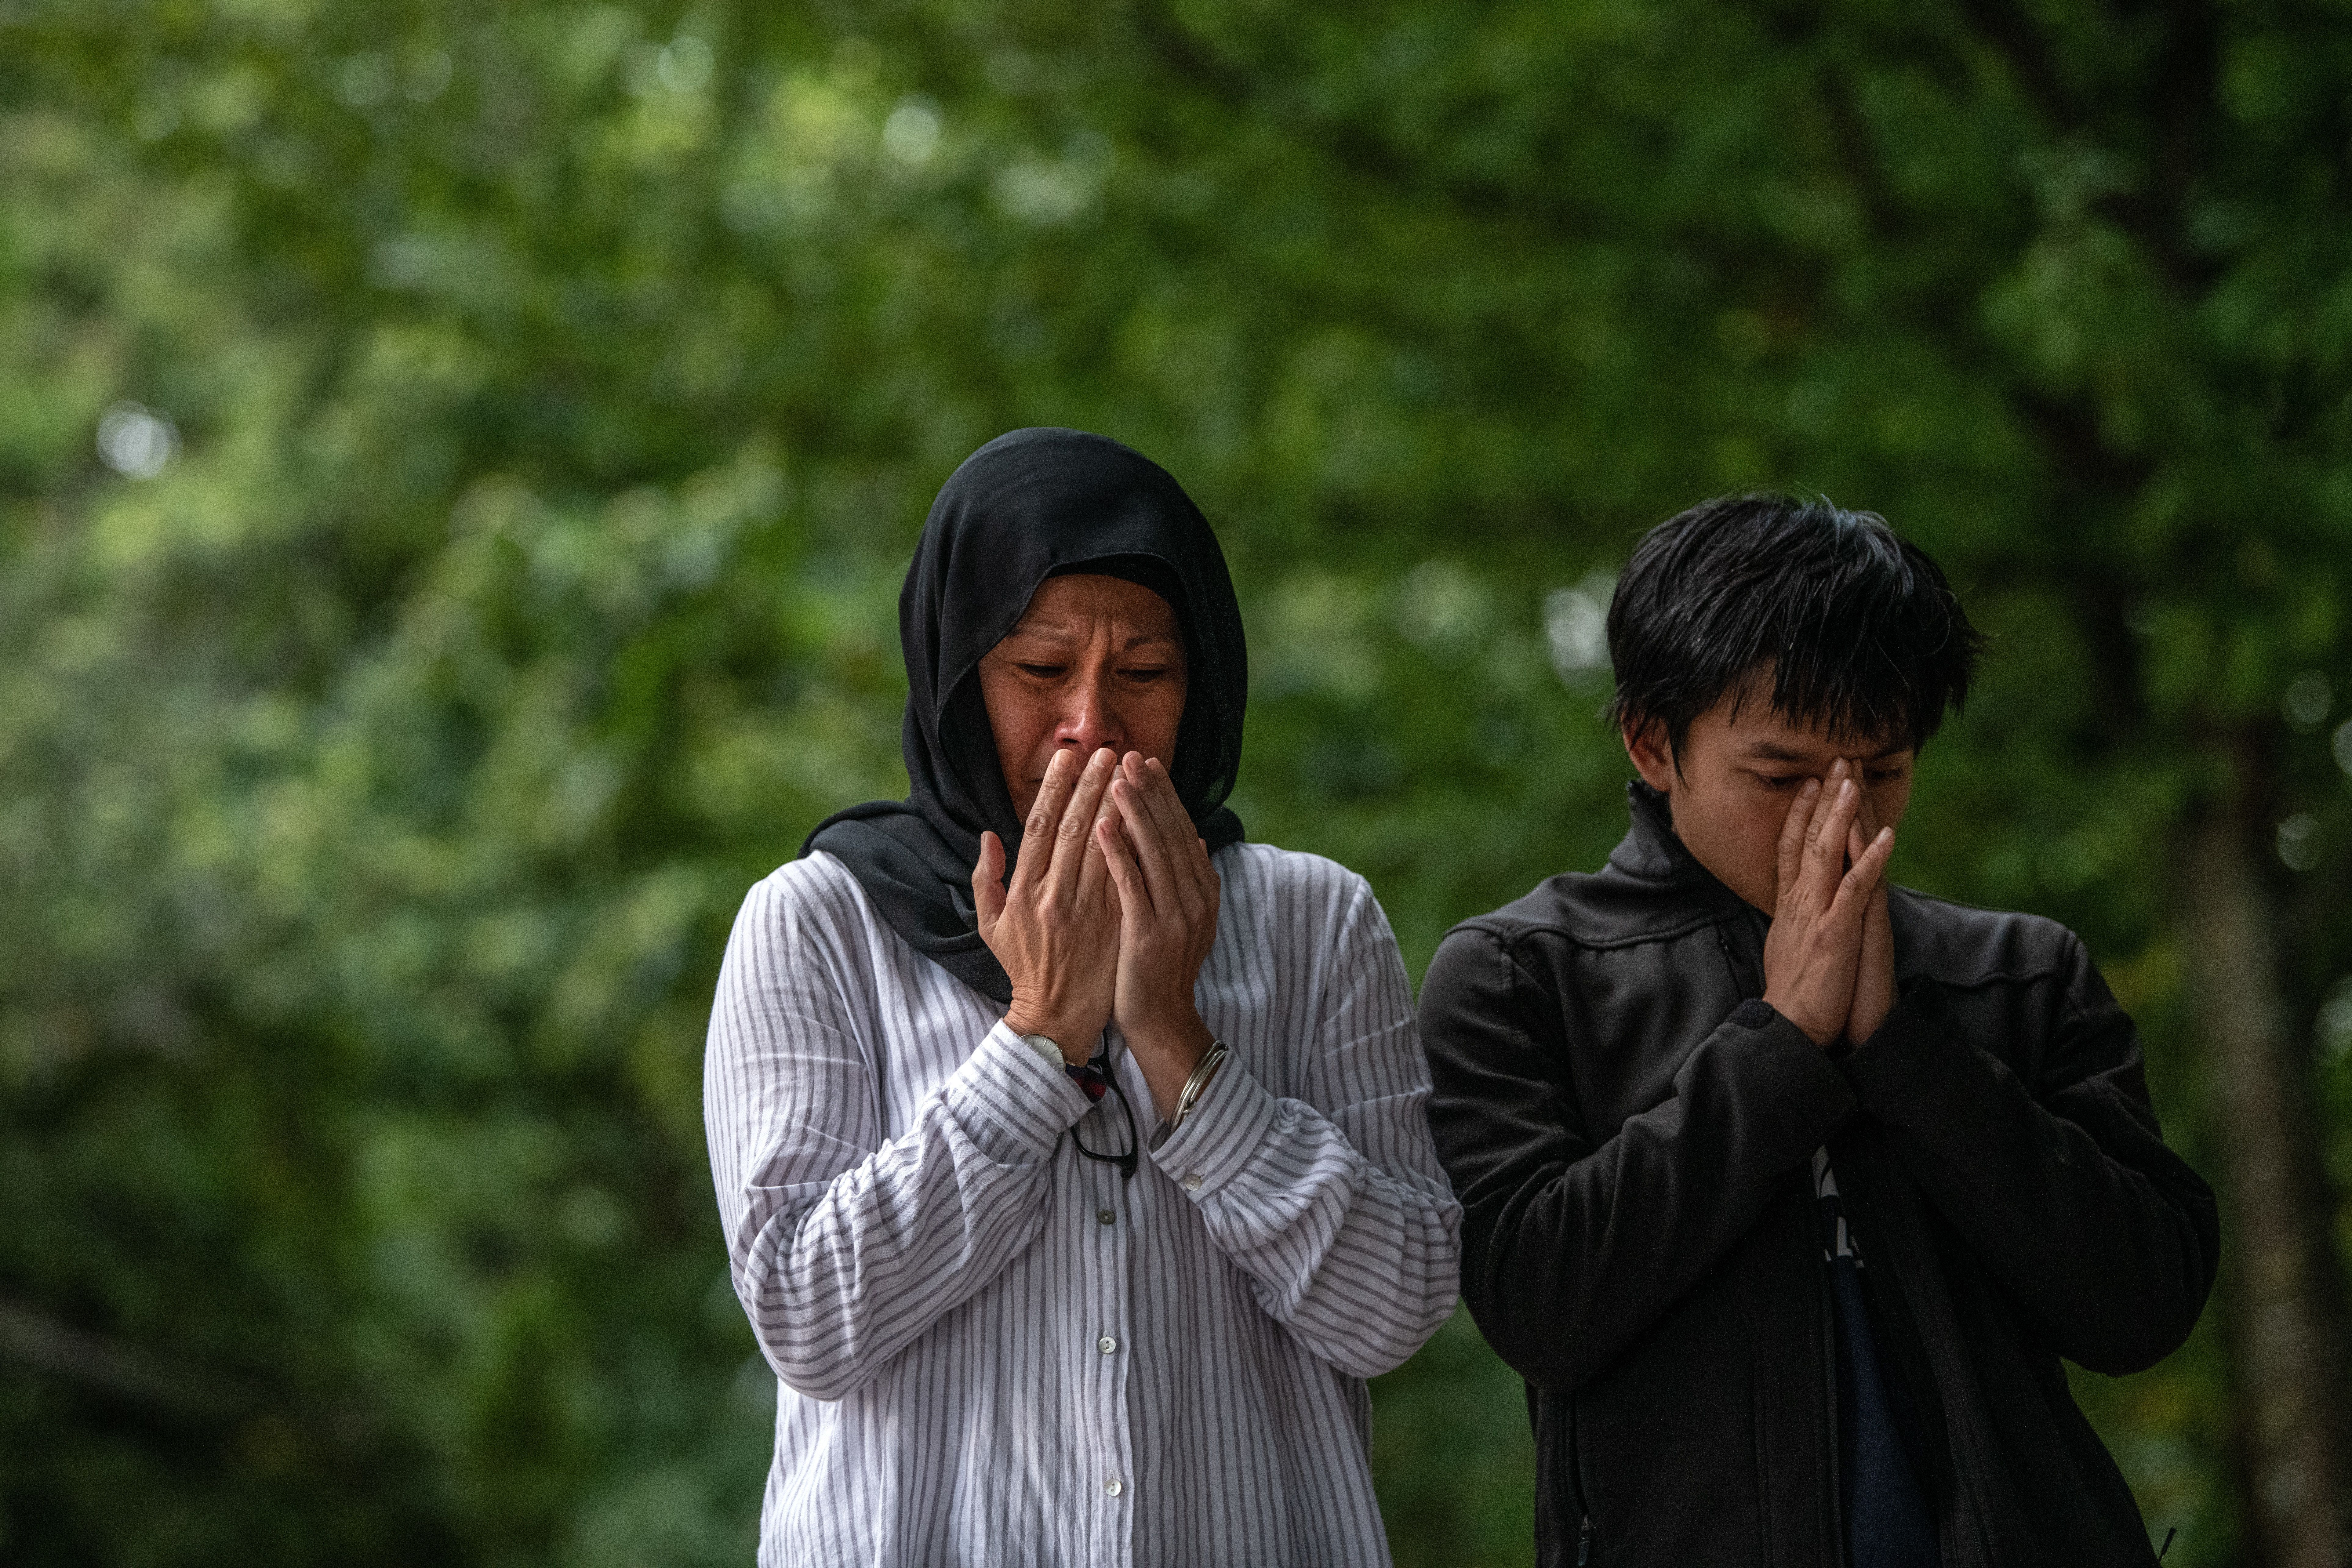 CHRISTCHURCH, NEW ZEALAND - MARCH 19: People pray next to flowers and tributes near Al Noor mosque on March 19, 2019 in Christchurch, New Zealand. 50 people were killed, and dozens are still injured in hospital after a gunman opened fire on two Christchurch mosques on Friday, 15 March.  The accused attacker, 28-year-old Australian, Brenton Tarrant, has been charged with murder and remanded in custody until April 5. The attack is the worst mass shooting in New Zealand's history. (Photo by Carl Court/Getty Images)